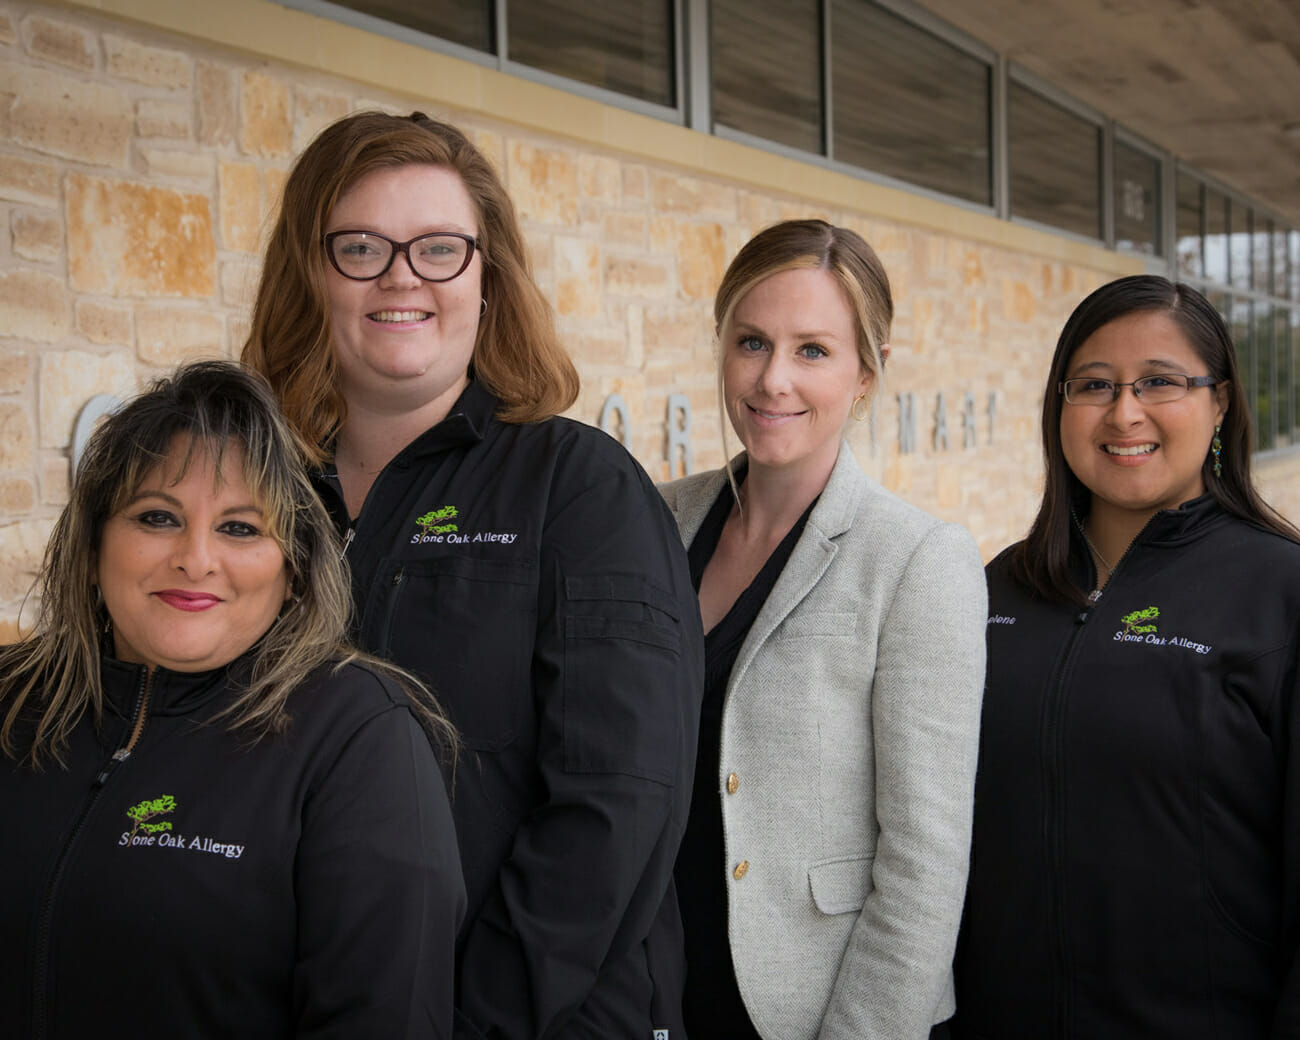 The Team at Stone Oak Allergy San Marcos